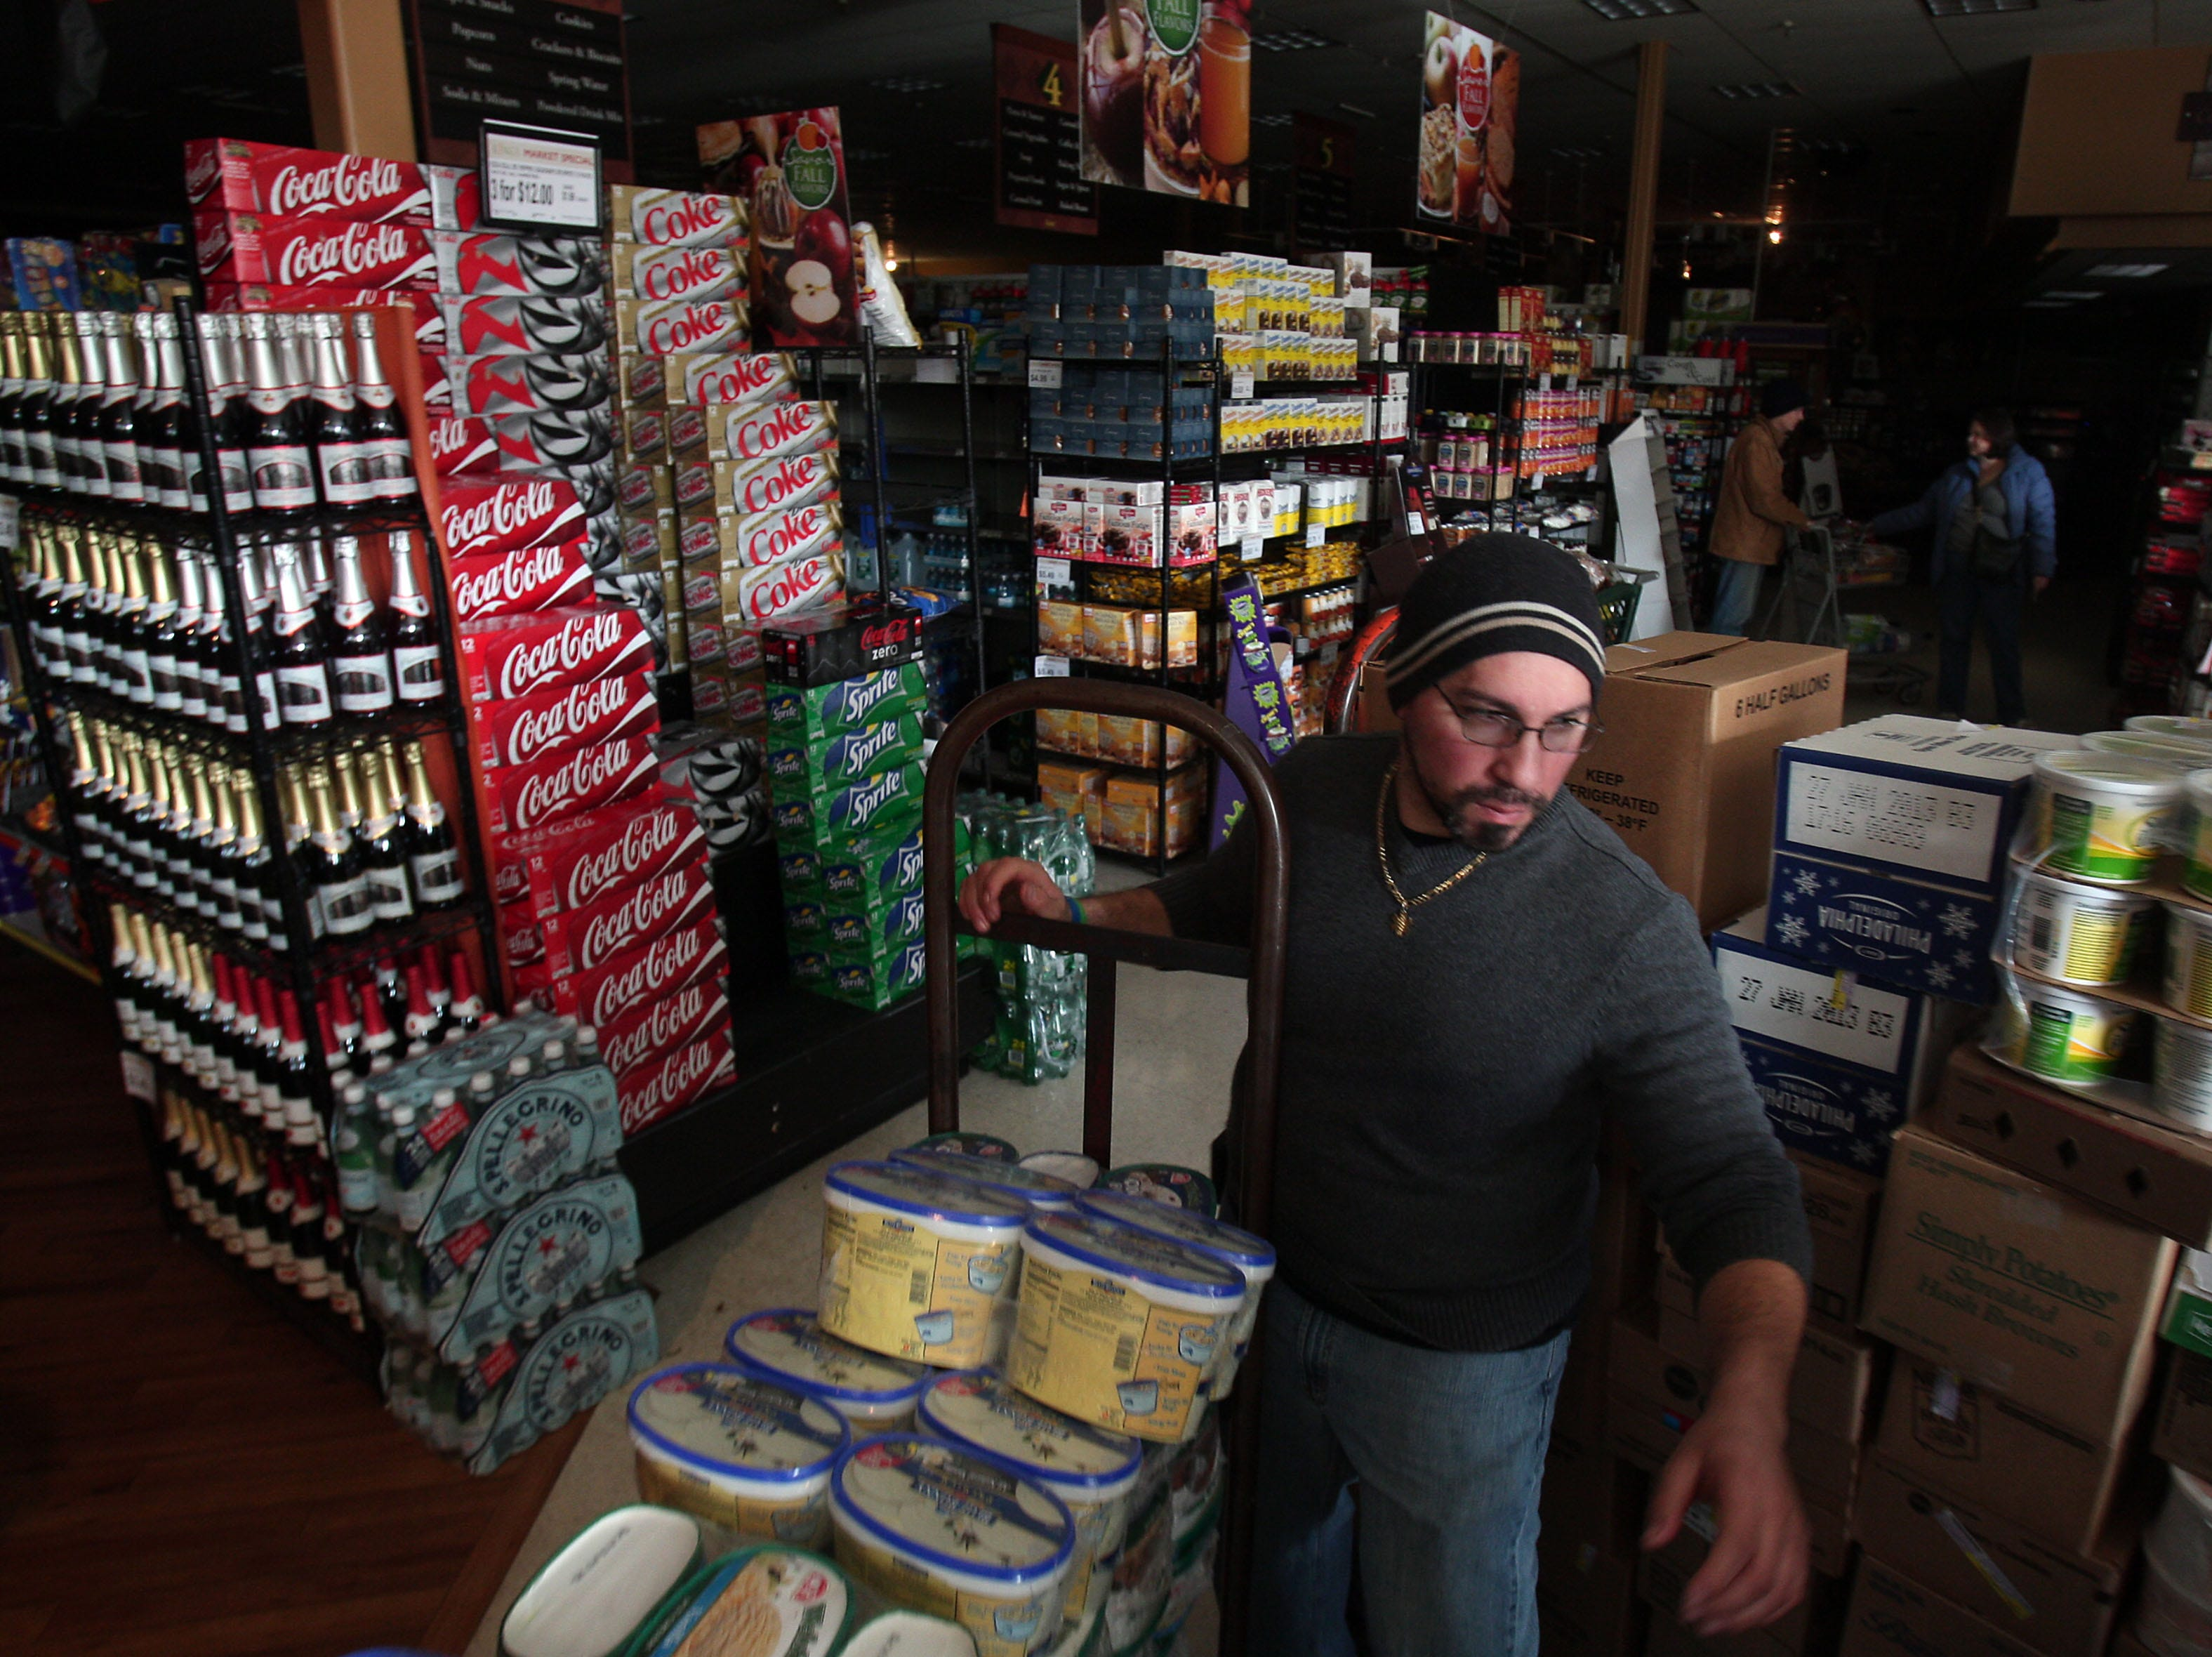 Chatham, NJ- November 1, 2012--Produce Manager Mike Toscano of Watchung, NJ packs up perishables to be thrown away at Kings in Chatham, NJ after the supermarket lost most of its power after Hurricane Sandy devastated the eastern seaboard.